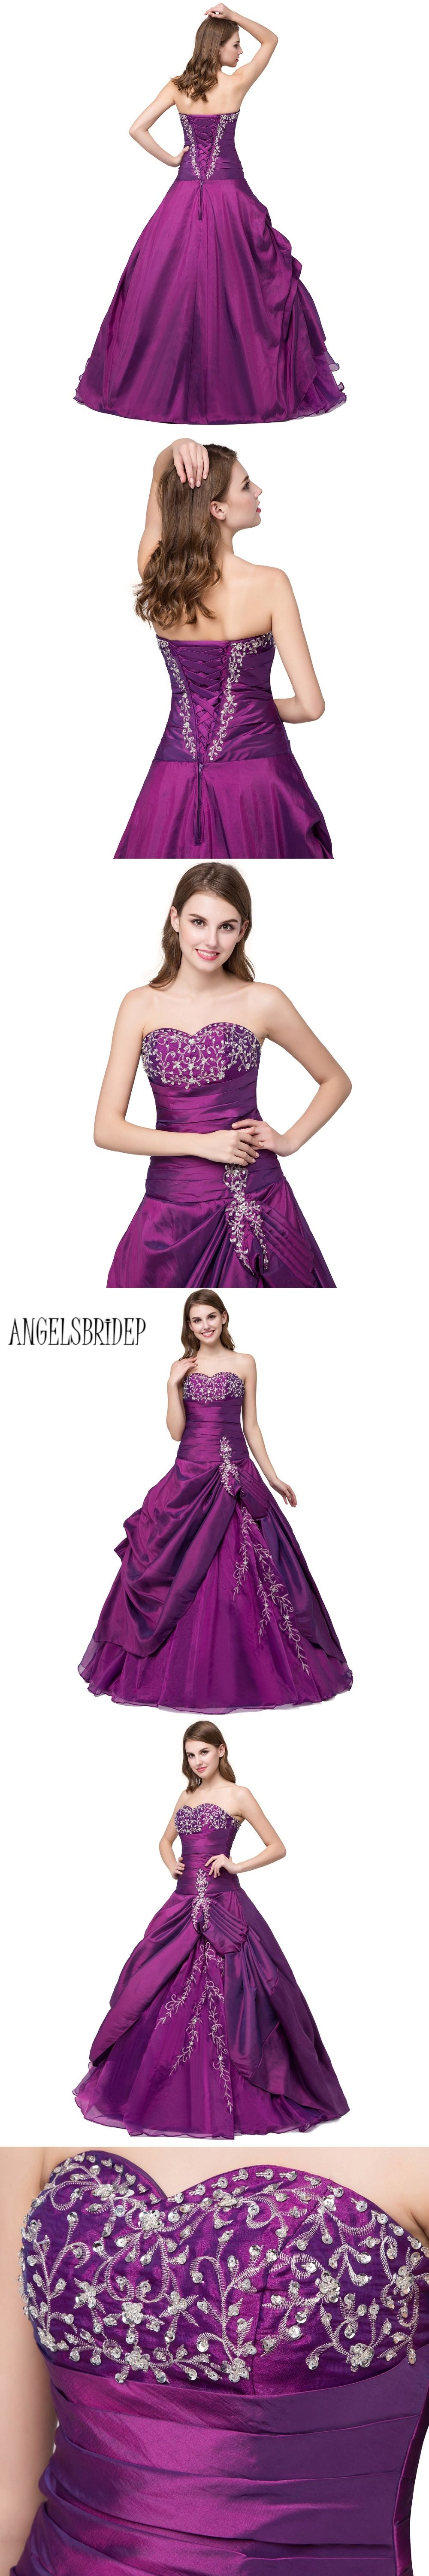 2c61d0637bc03 ANGELSBRIDEP Purple Sweet 16 Ball Gowns Quinceanera Dresses Cheap ...